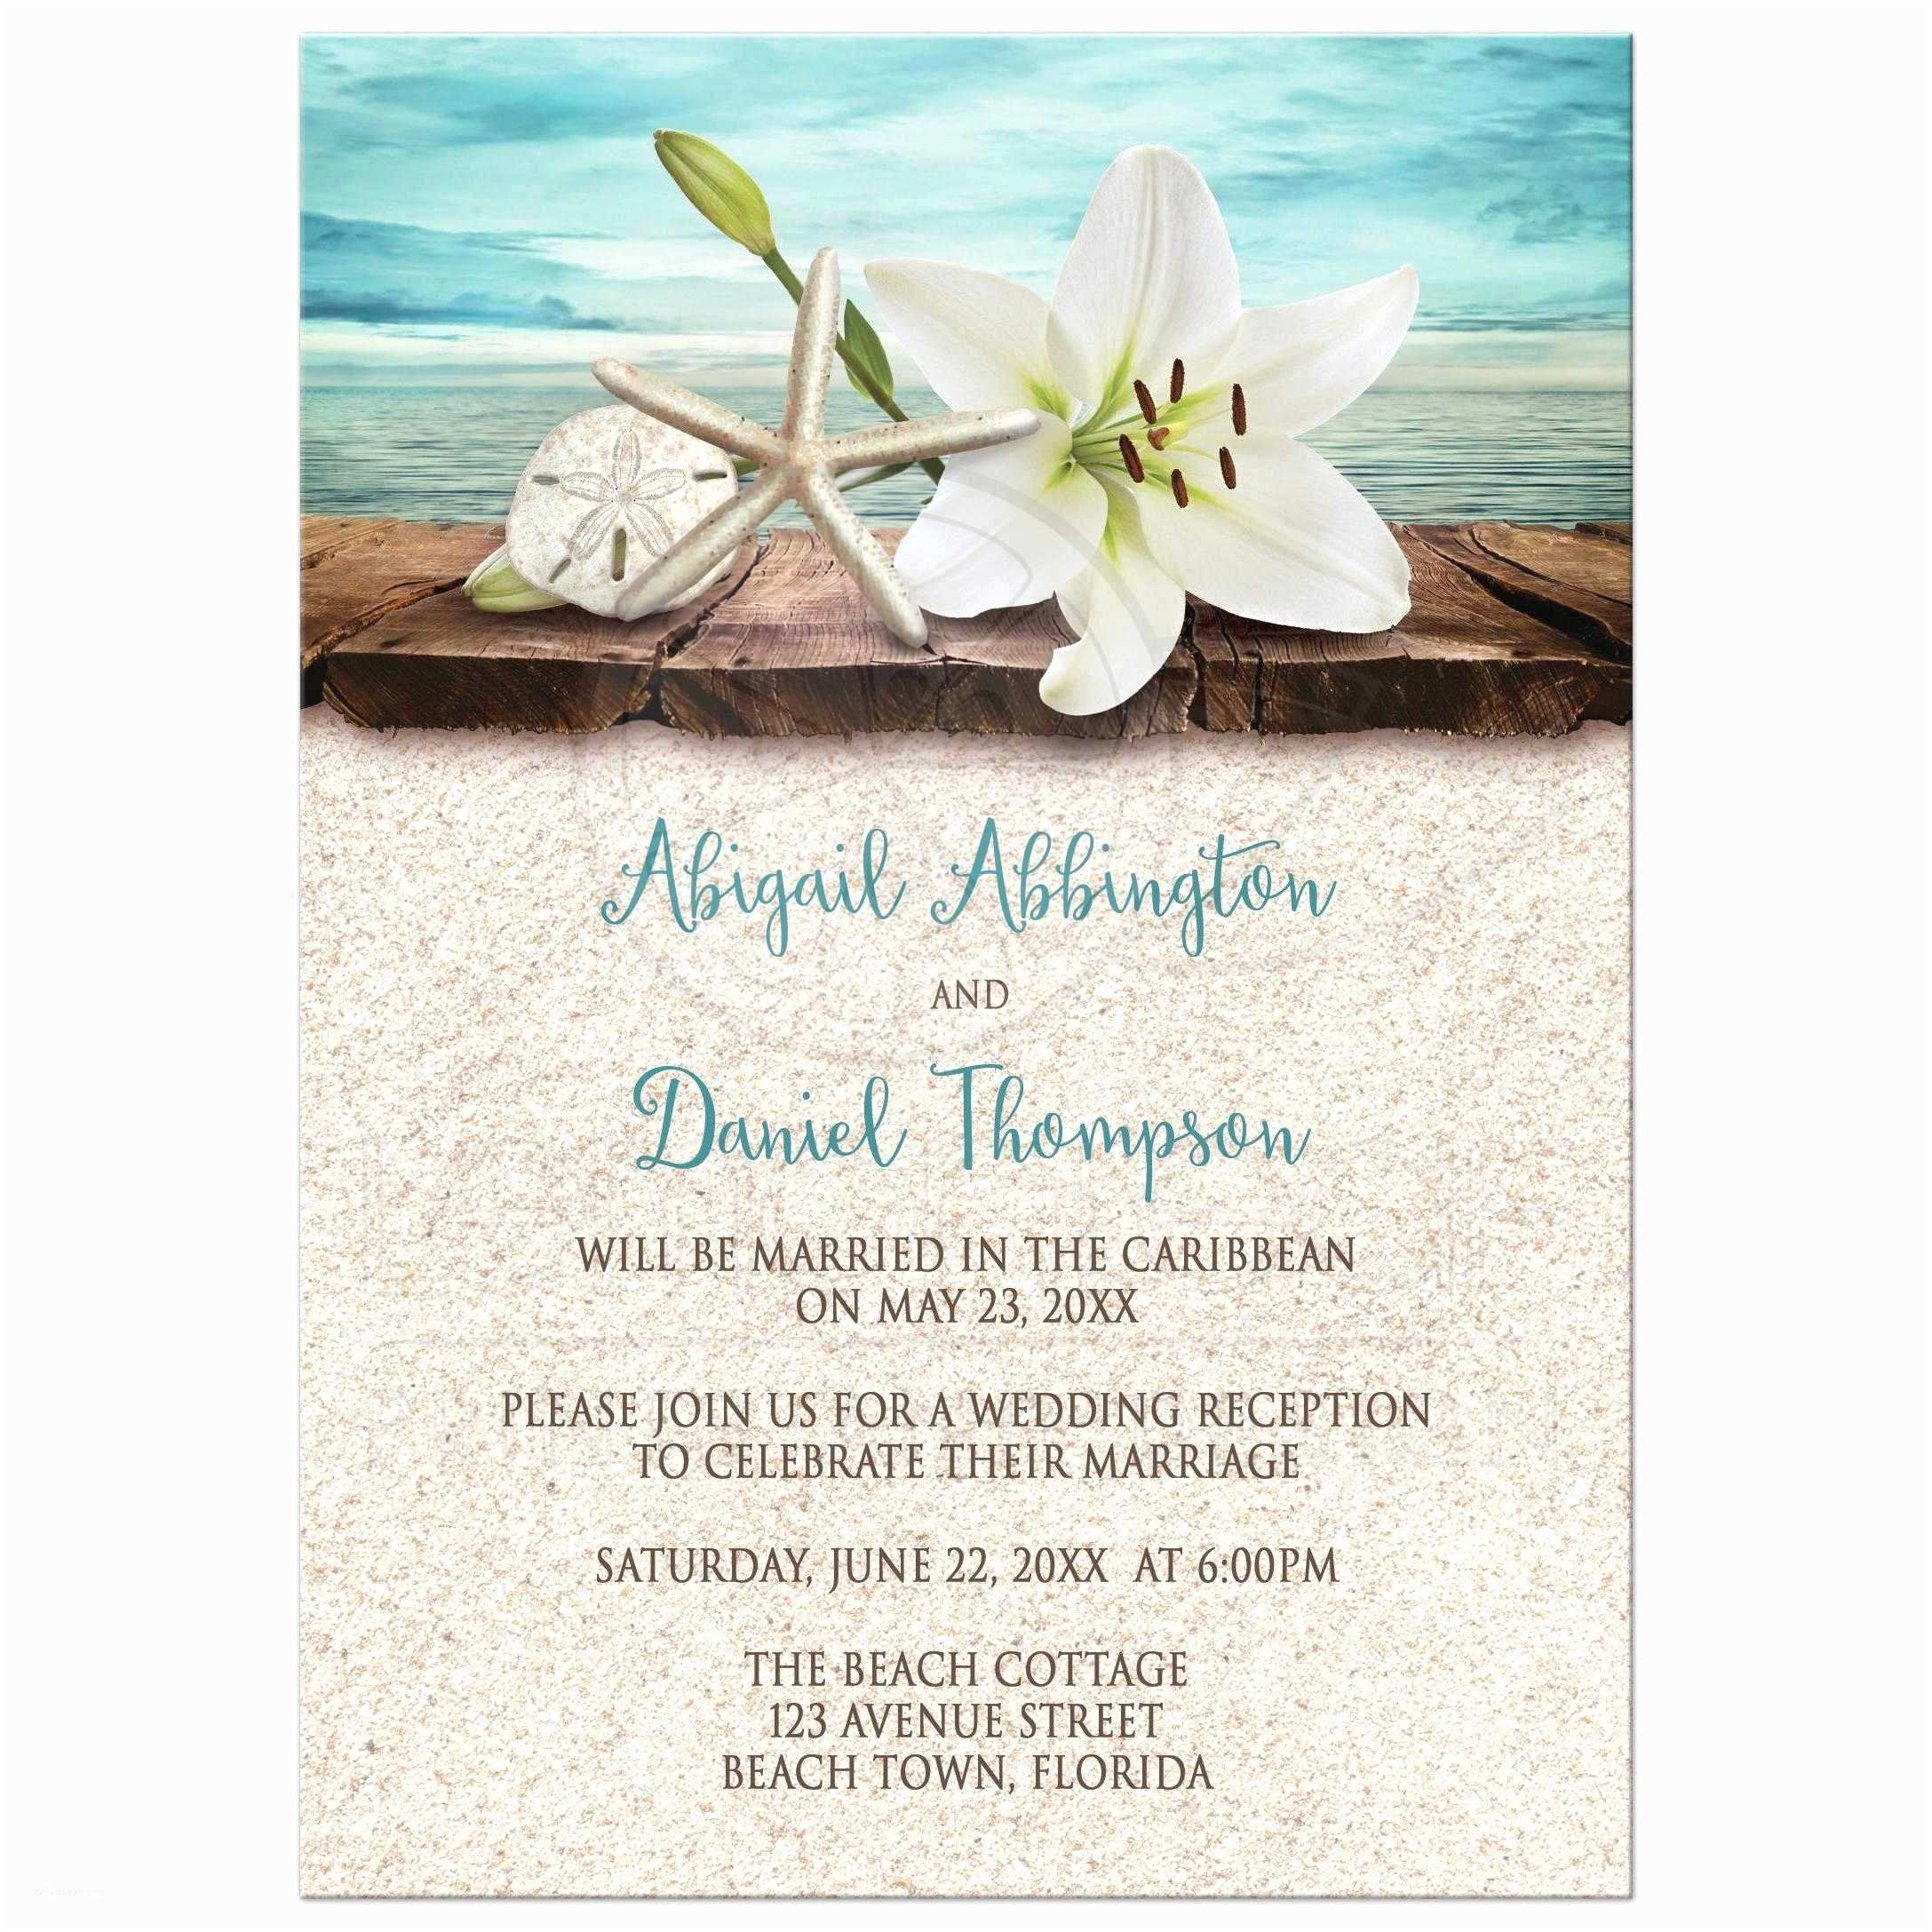 Beach Wedding Invitations Online Wedding Invitations Beach Reception Invitations Invite